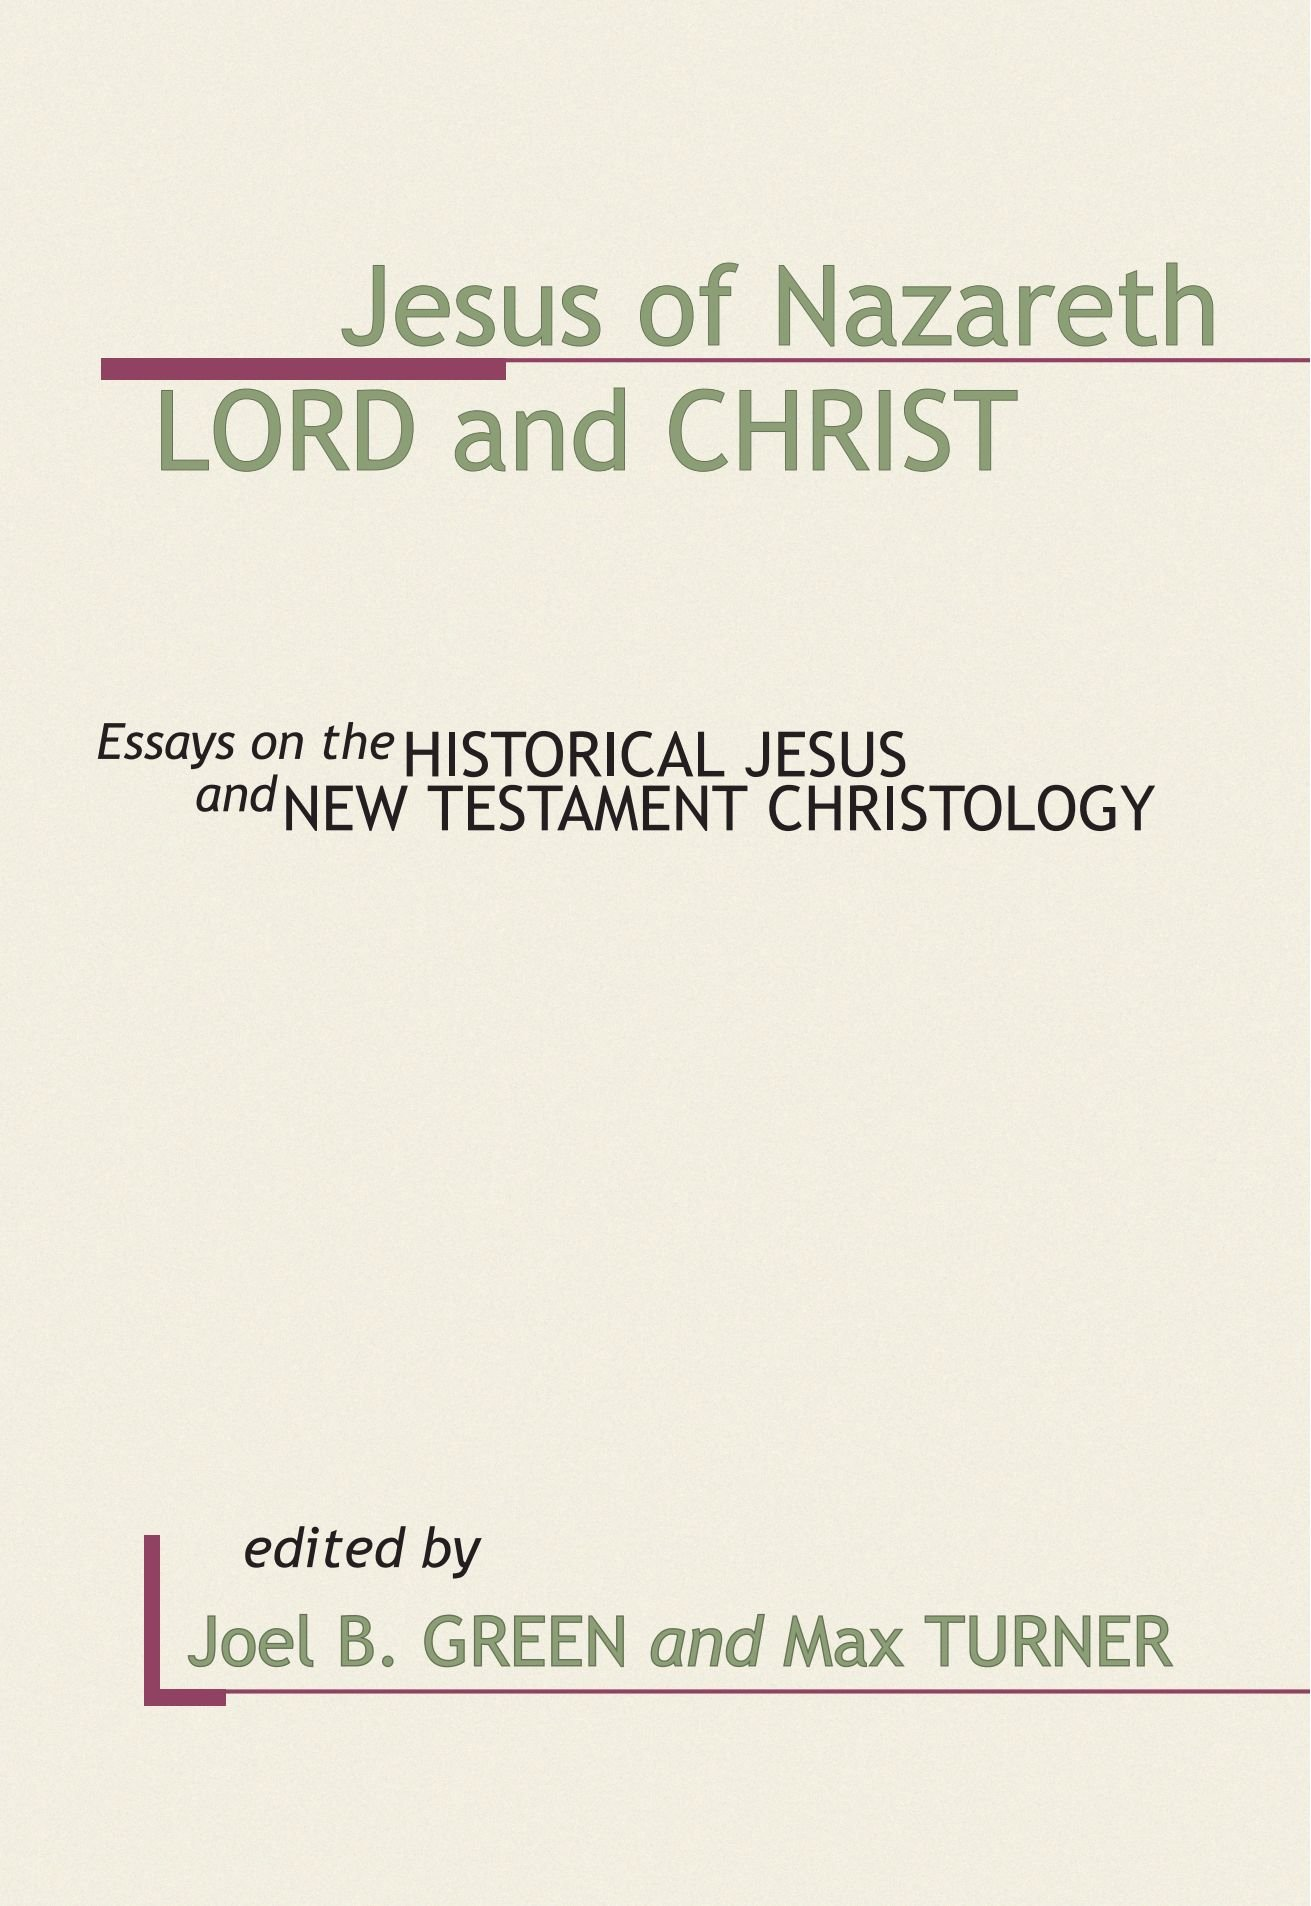 jesus of nazareth lord and christ essays on the historical jesus jesus of nazareth lord and christ essays on the historical jesus and new testament christology joel b green max turner 9781579102289 com